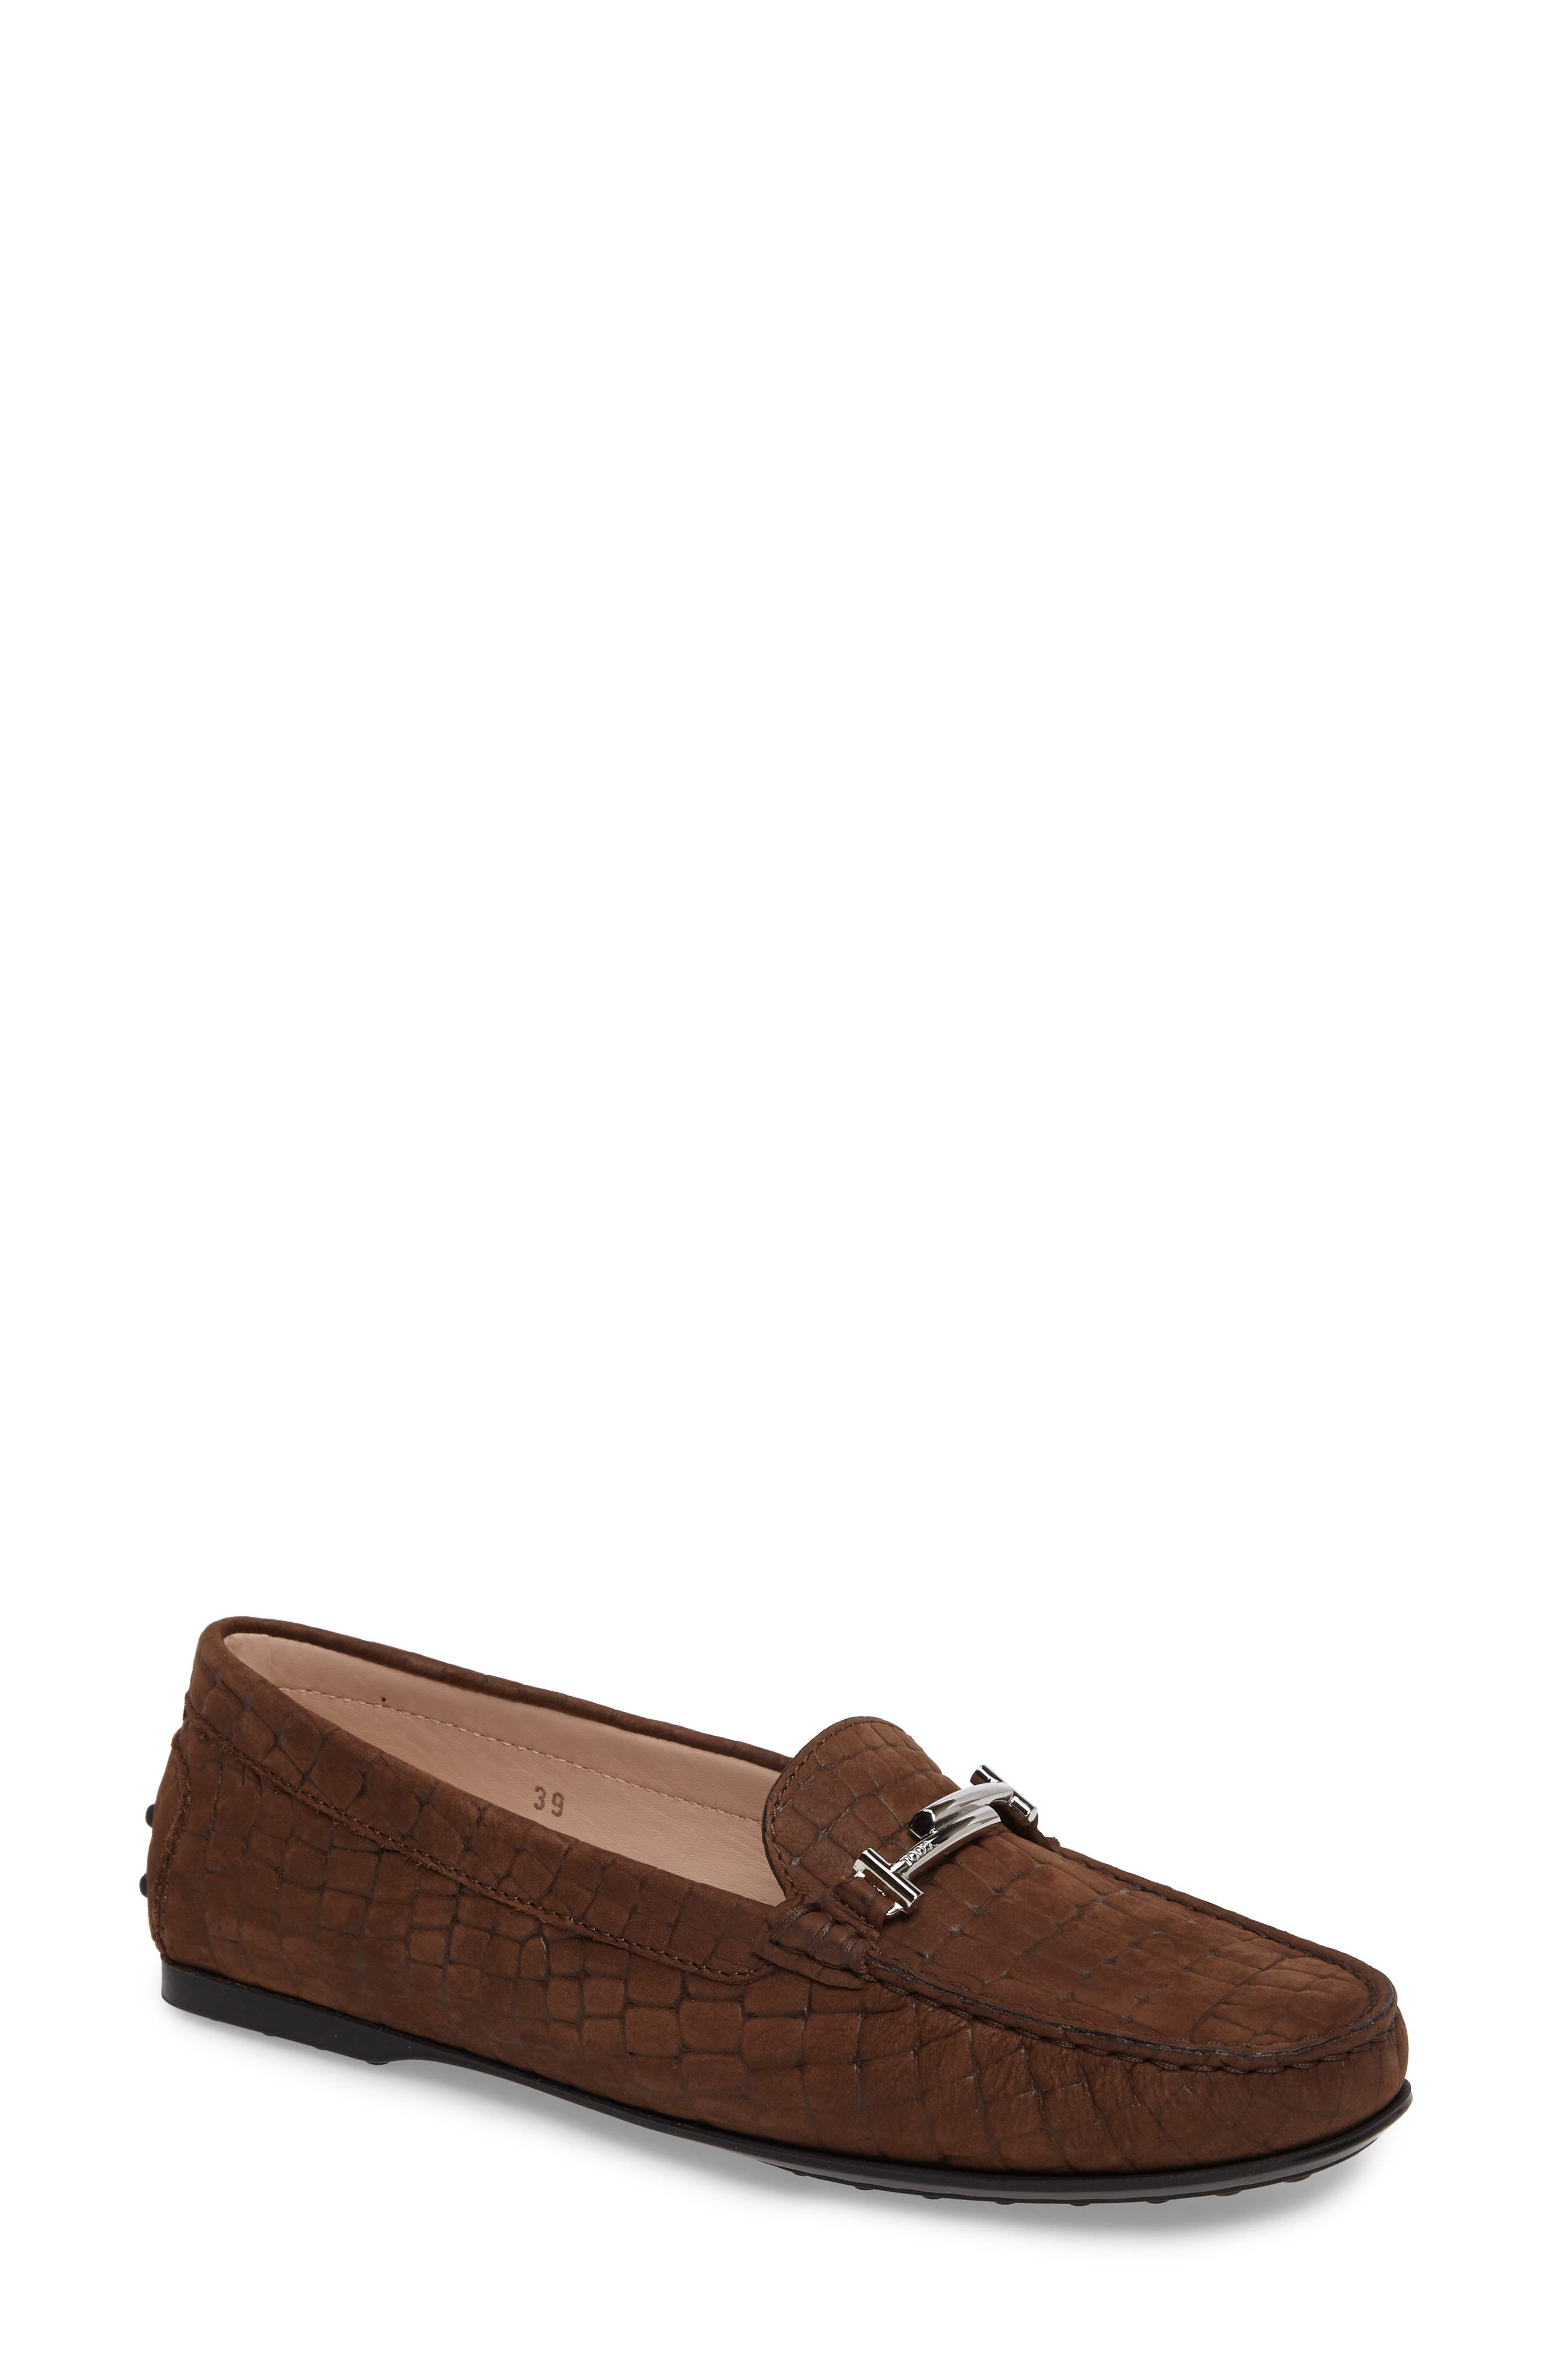 Tods Croc Embossed Double T Loafer,                             Main thumbnail 1, color,                             249